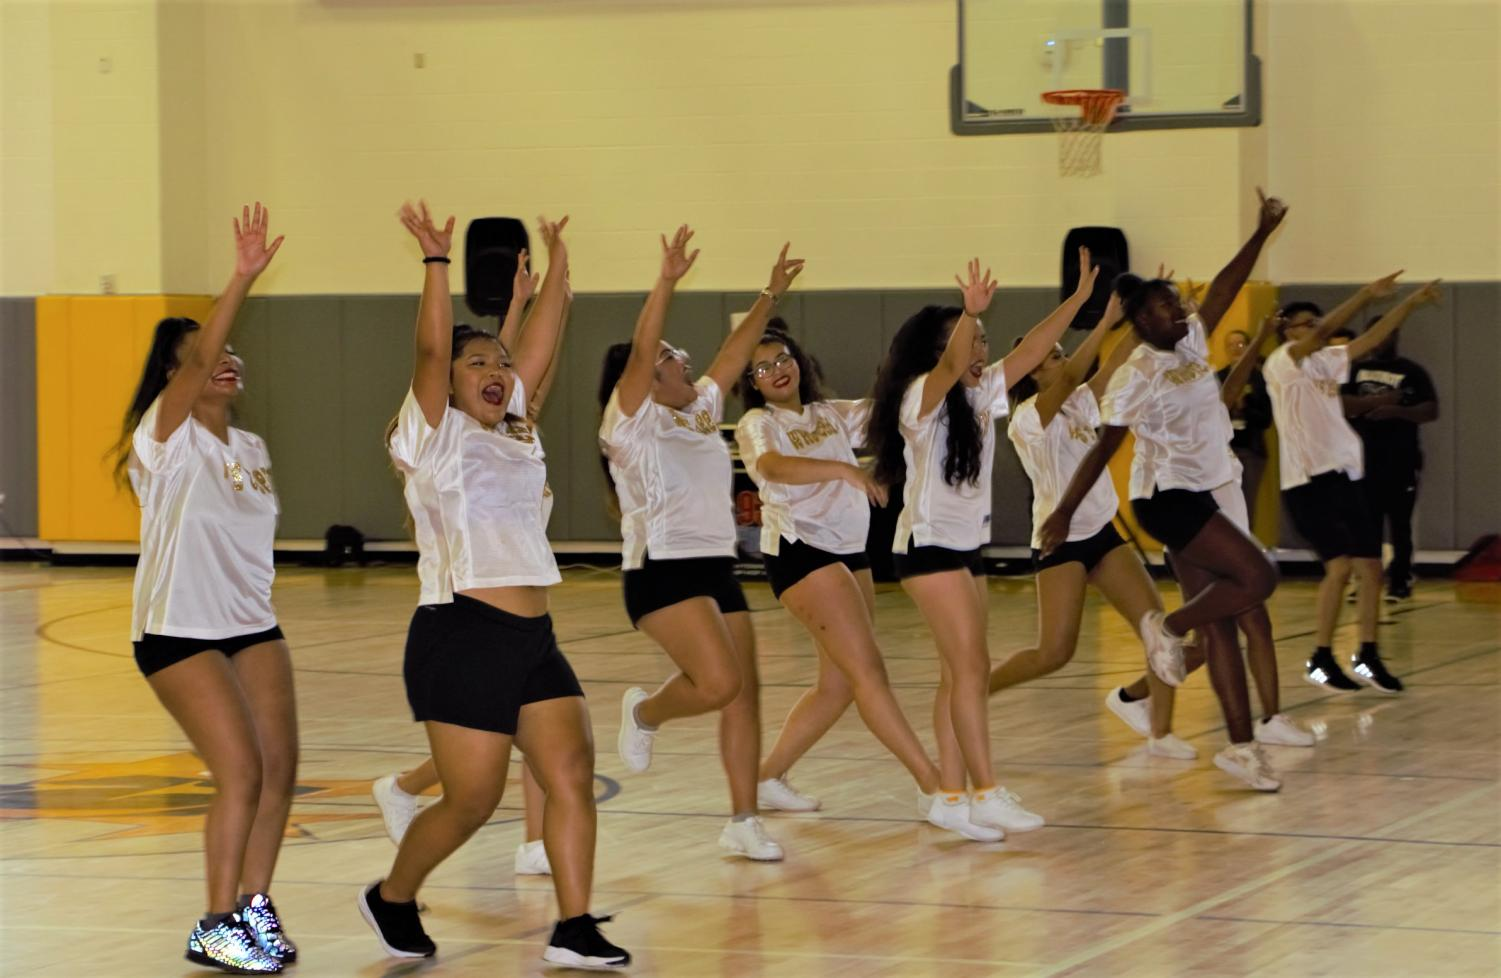 The Wisdom Cheerleading Team performing at the Homecoming Pep Rally; Friday, Oct. 5, 2018